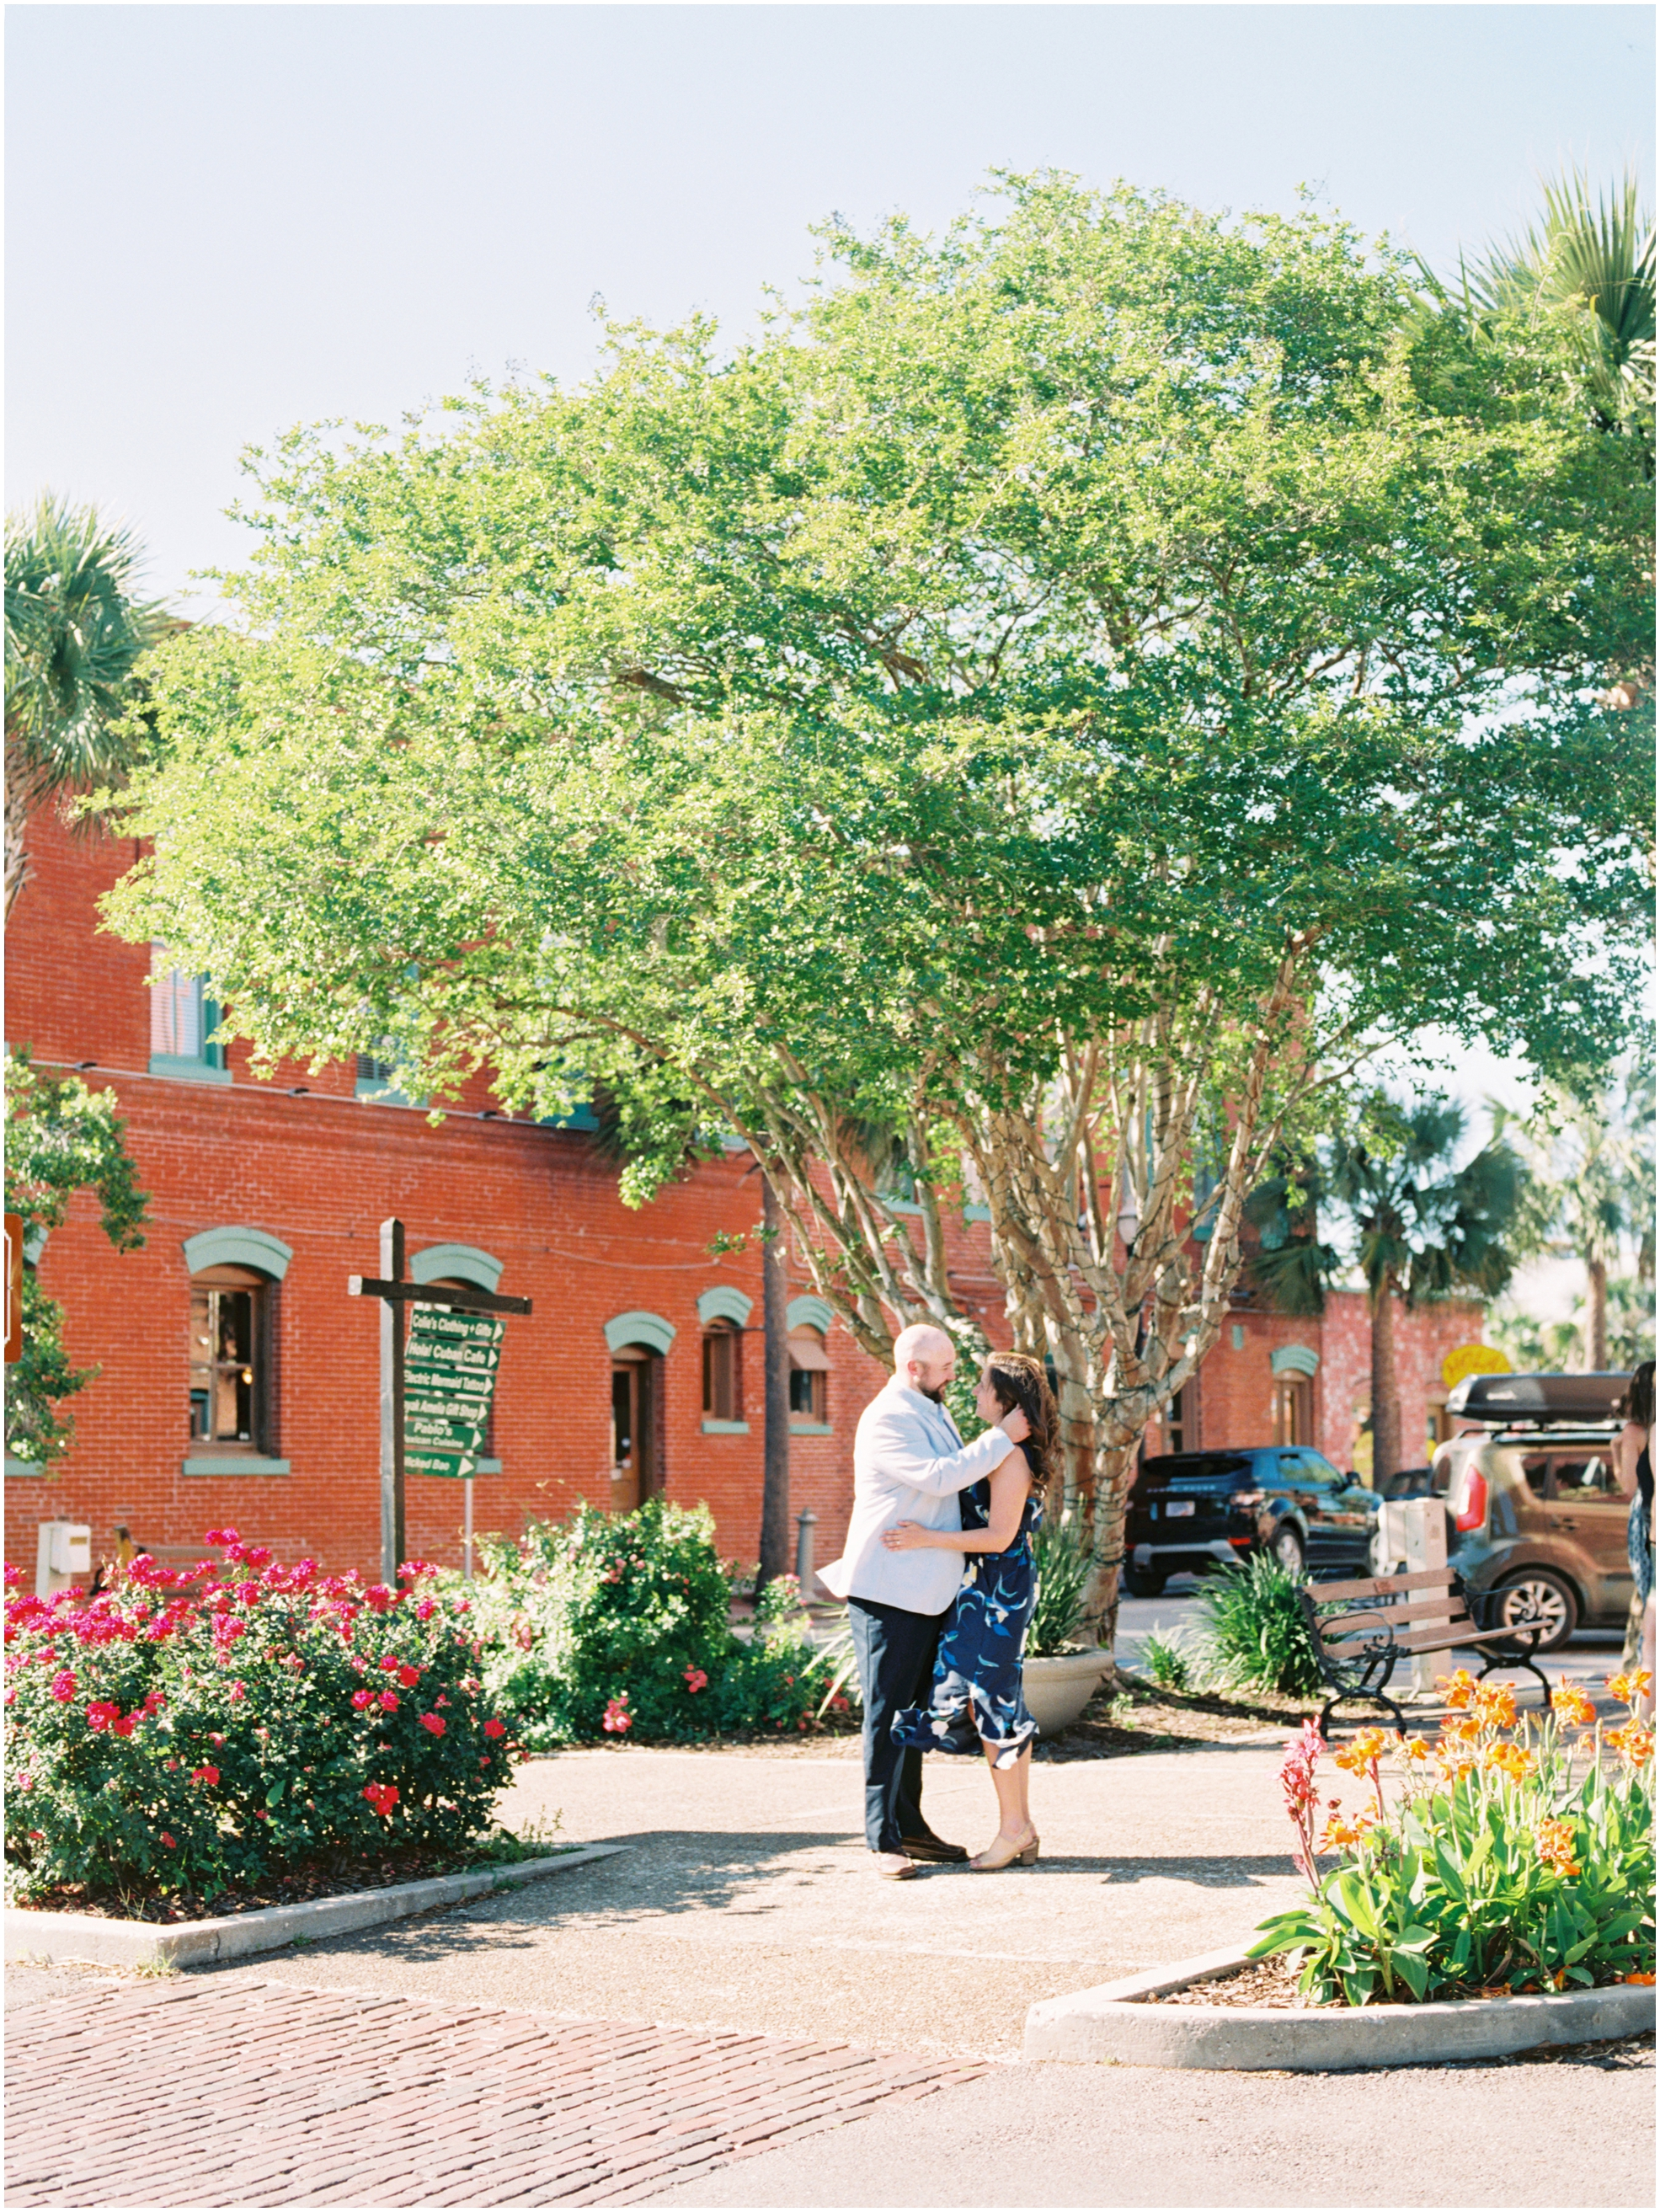 Lisa Silva Photography- Jacksonville, St. Augustine, Amelia Island, Ponte Vedra Beach, North East Florida Fine Art Film Photographer- Engagement Session in Historic Downtown Fernandina Beach- Amelia Island Wedding Photographer_0017.jpg